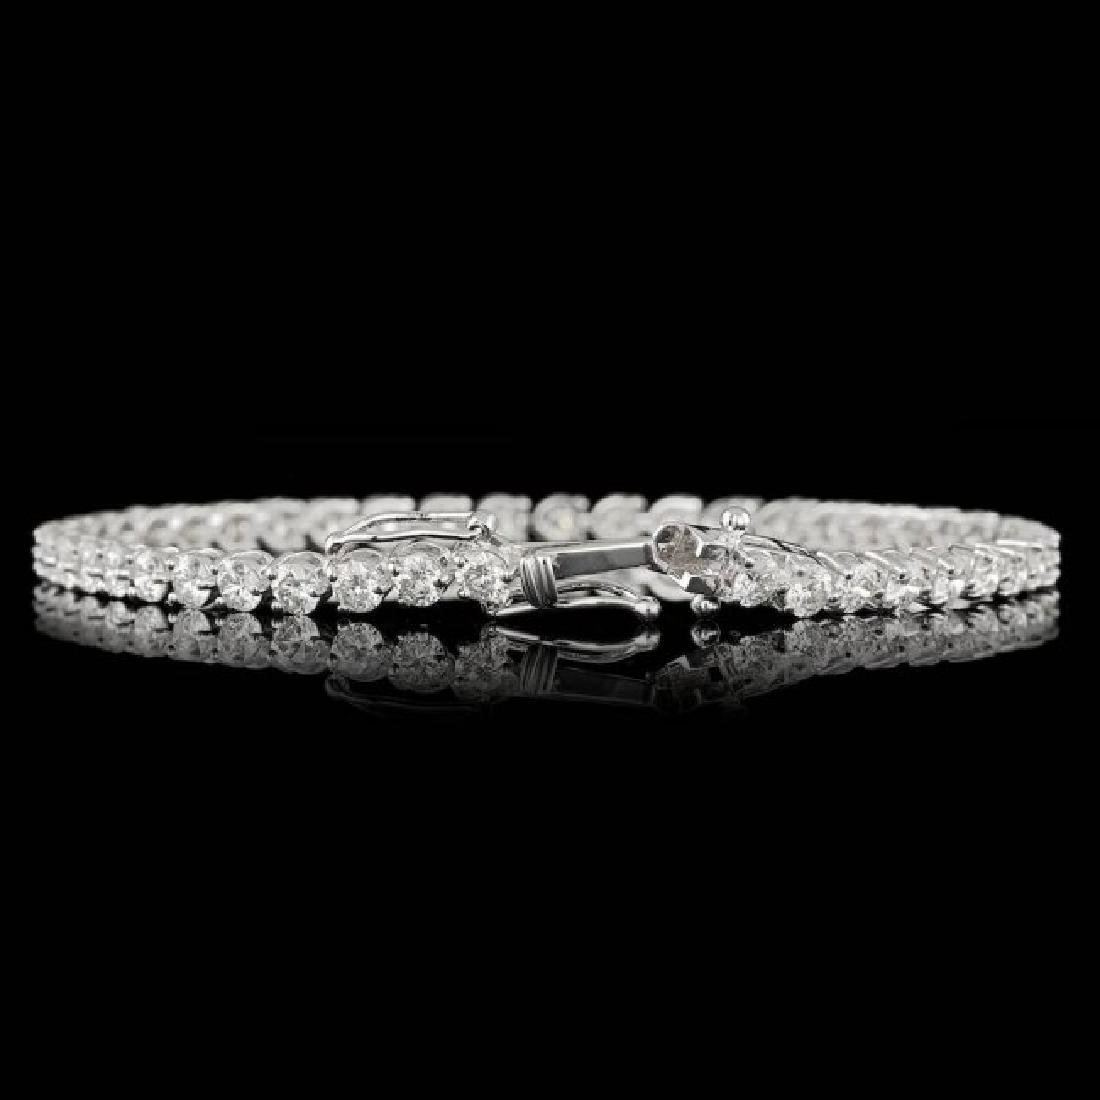 18k White Gold 6.25ct Diamond Bracelet - 2